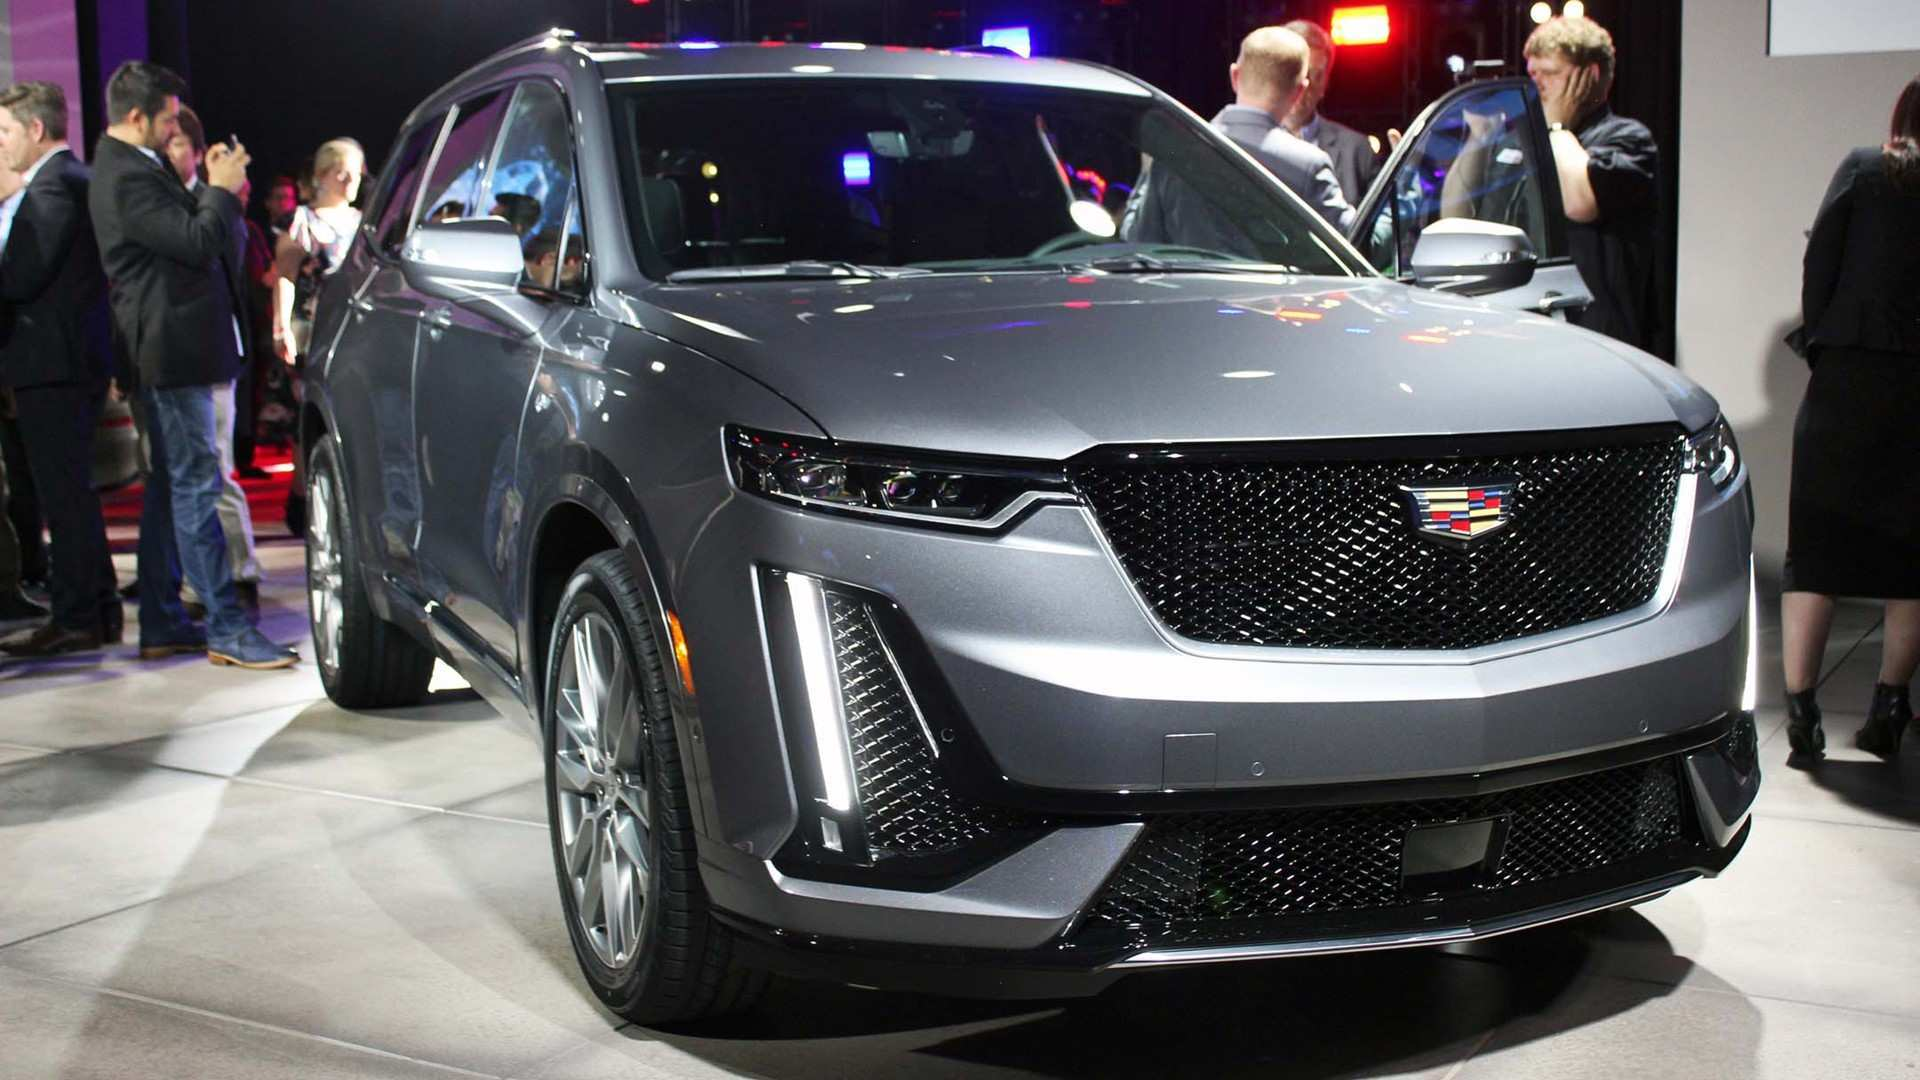 96 Concept of 2020 Cadillac Xt6 Availability Redesign and Concept by 2020 Cadillac Xt6 Availability